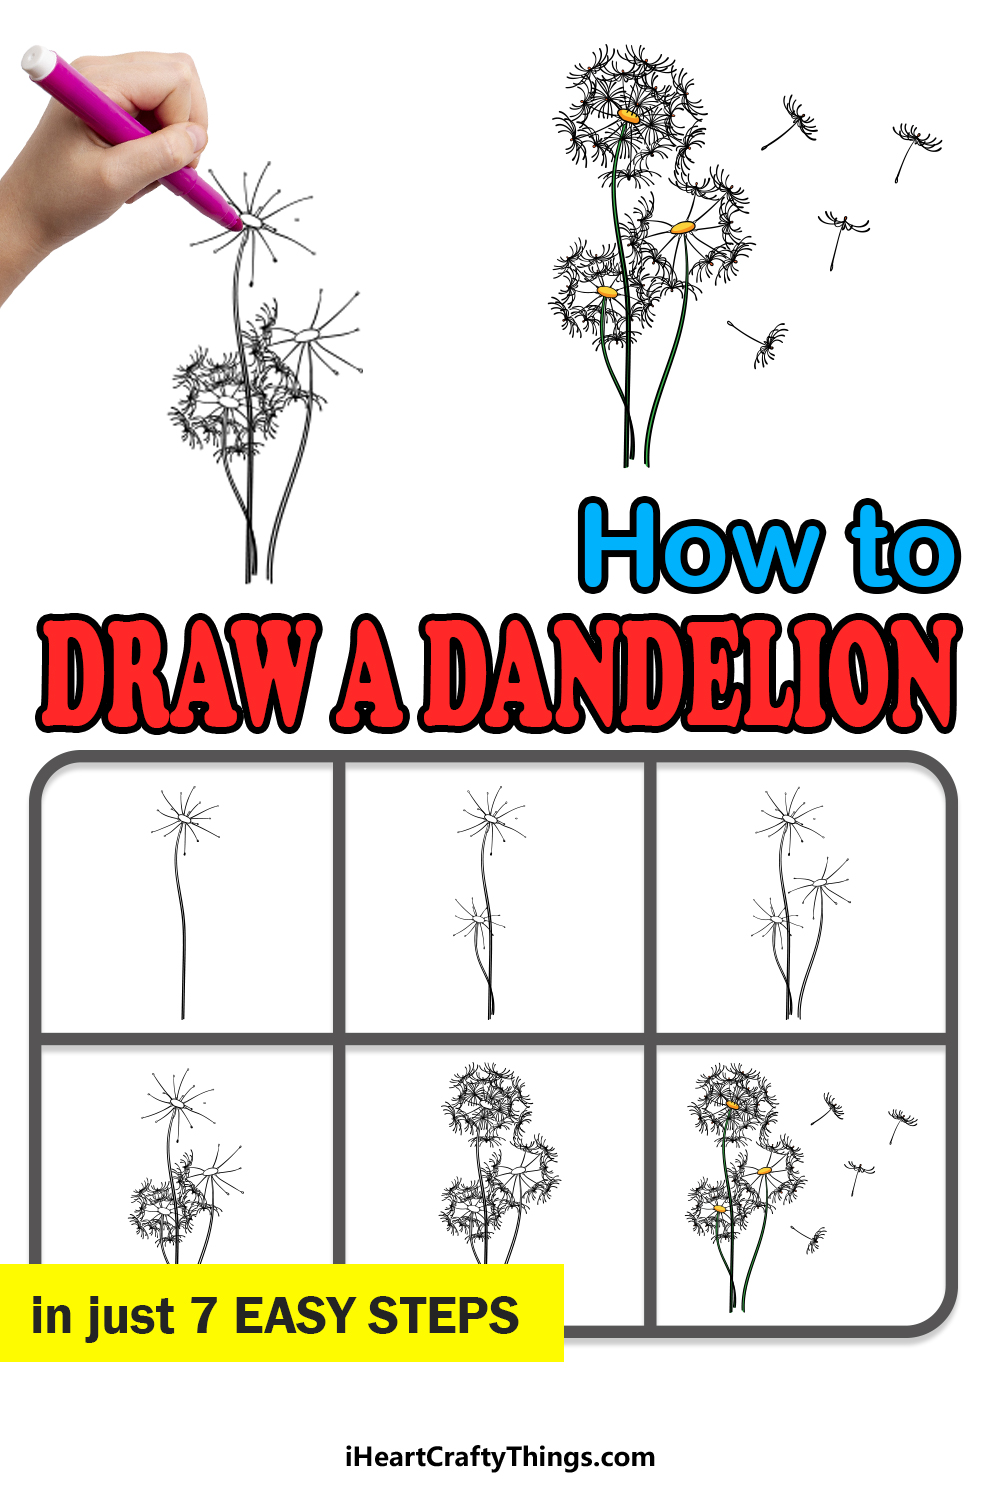 how to draw a dandelion in 7 easy steps